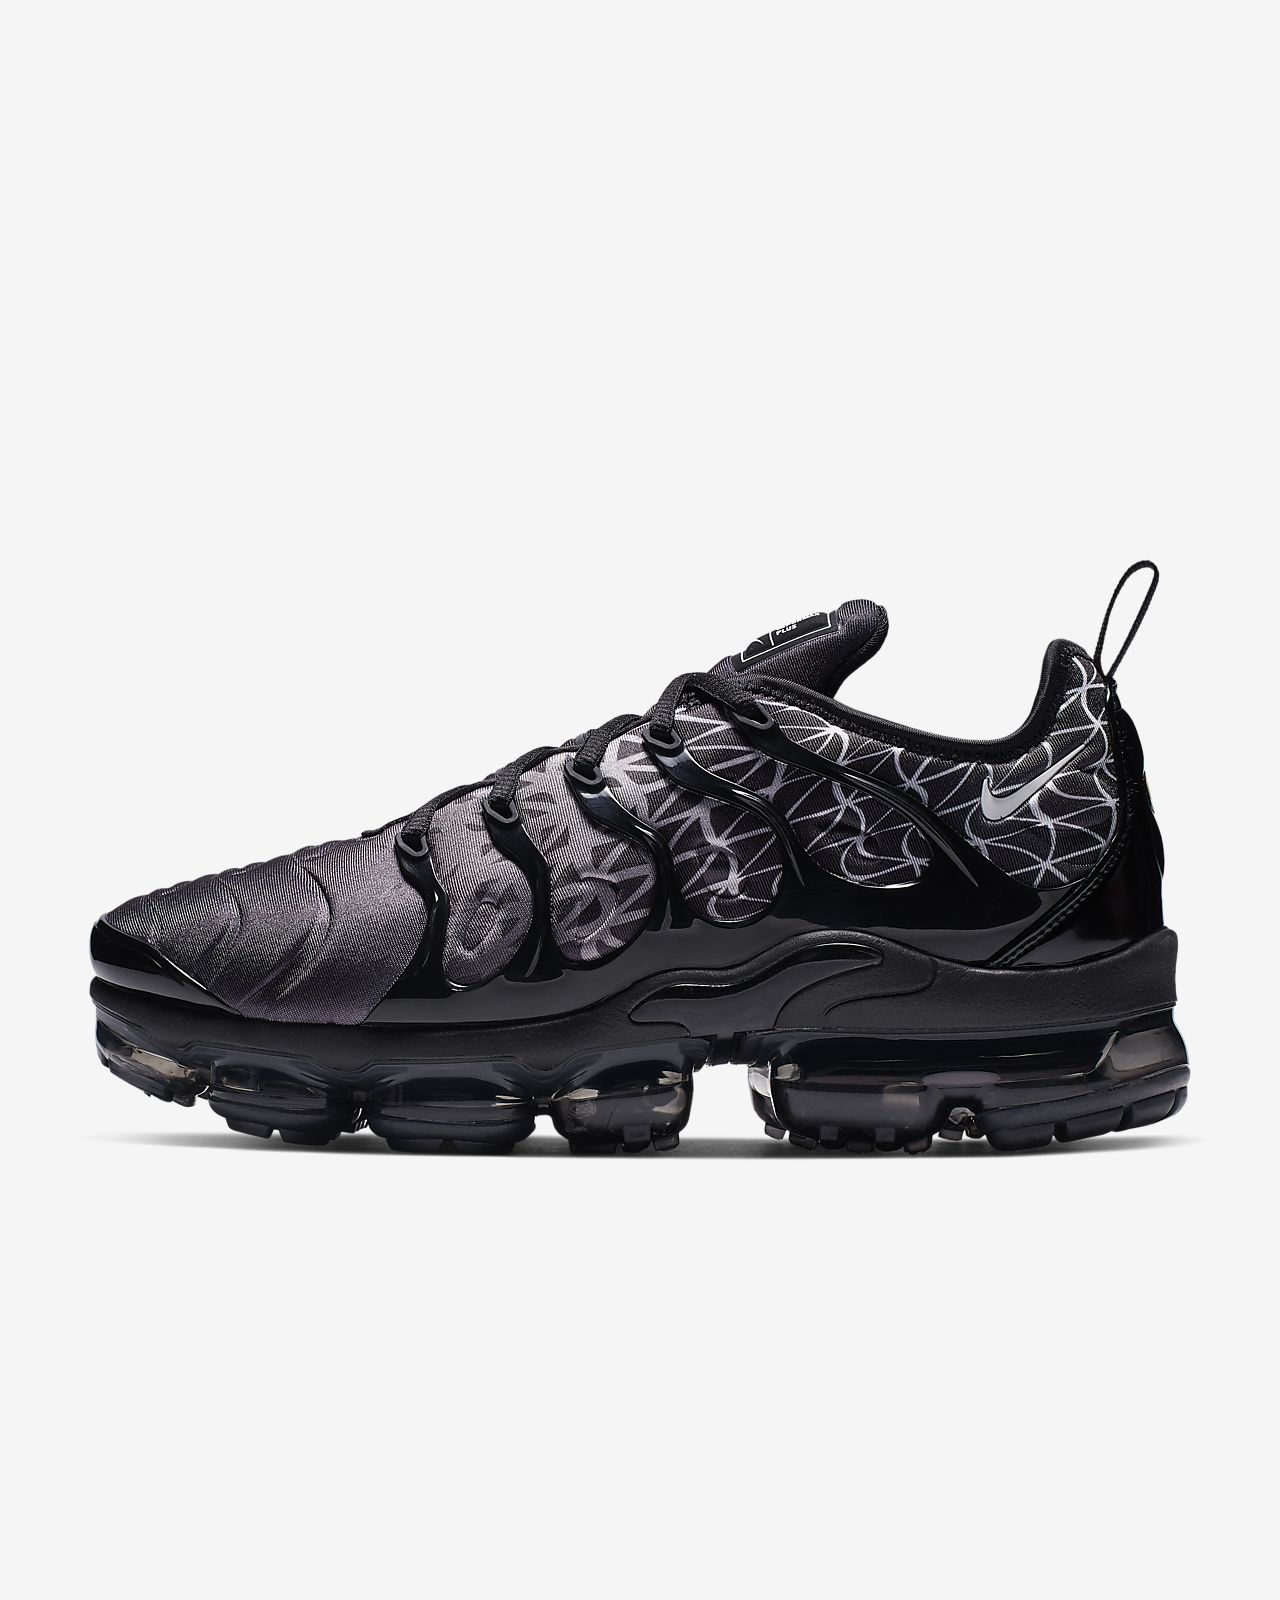 sneakers for cheap 37c26 d7dc8 ... Chaussure Nike Air VaporMax Plus pour Homme